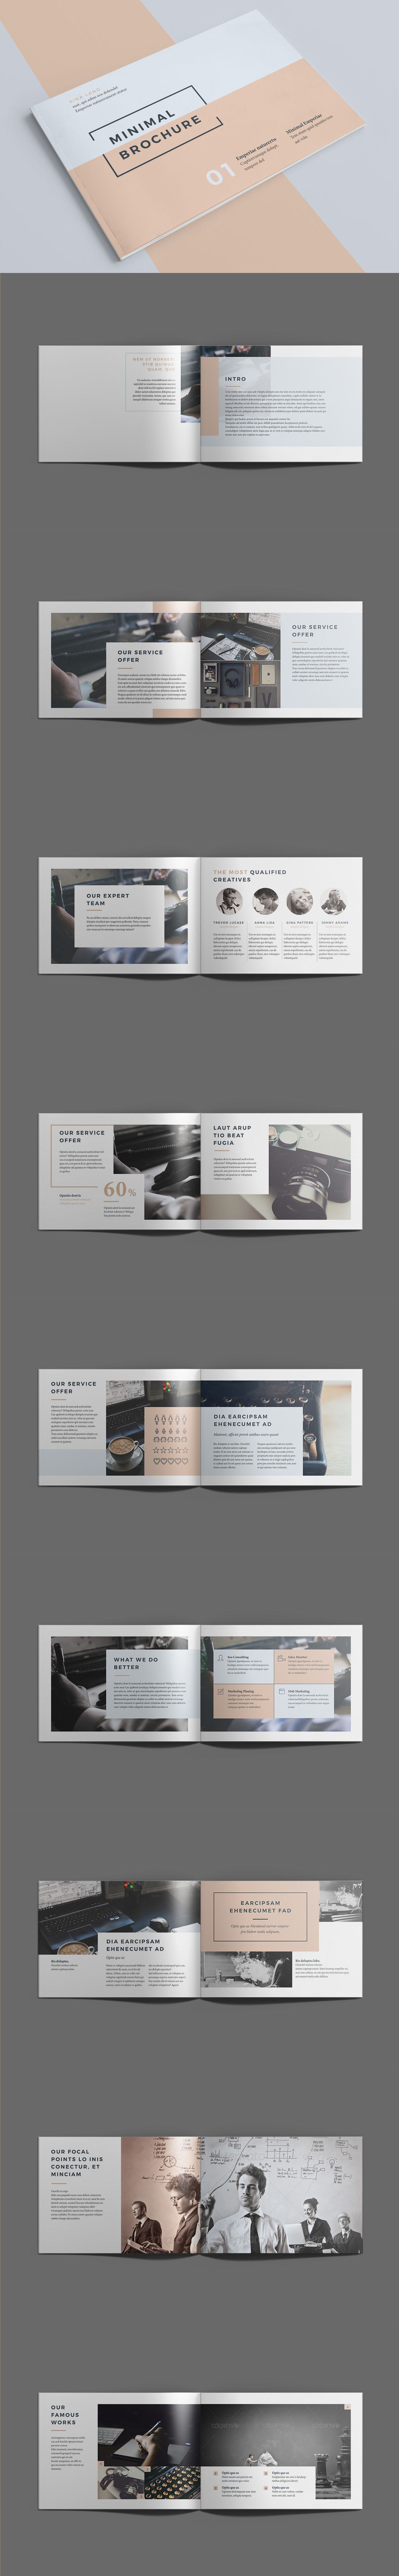 Minimal Brochure 18 pages A5 Template InDesign INDD | design ...